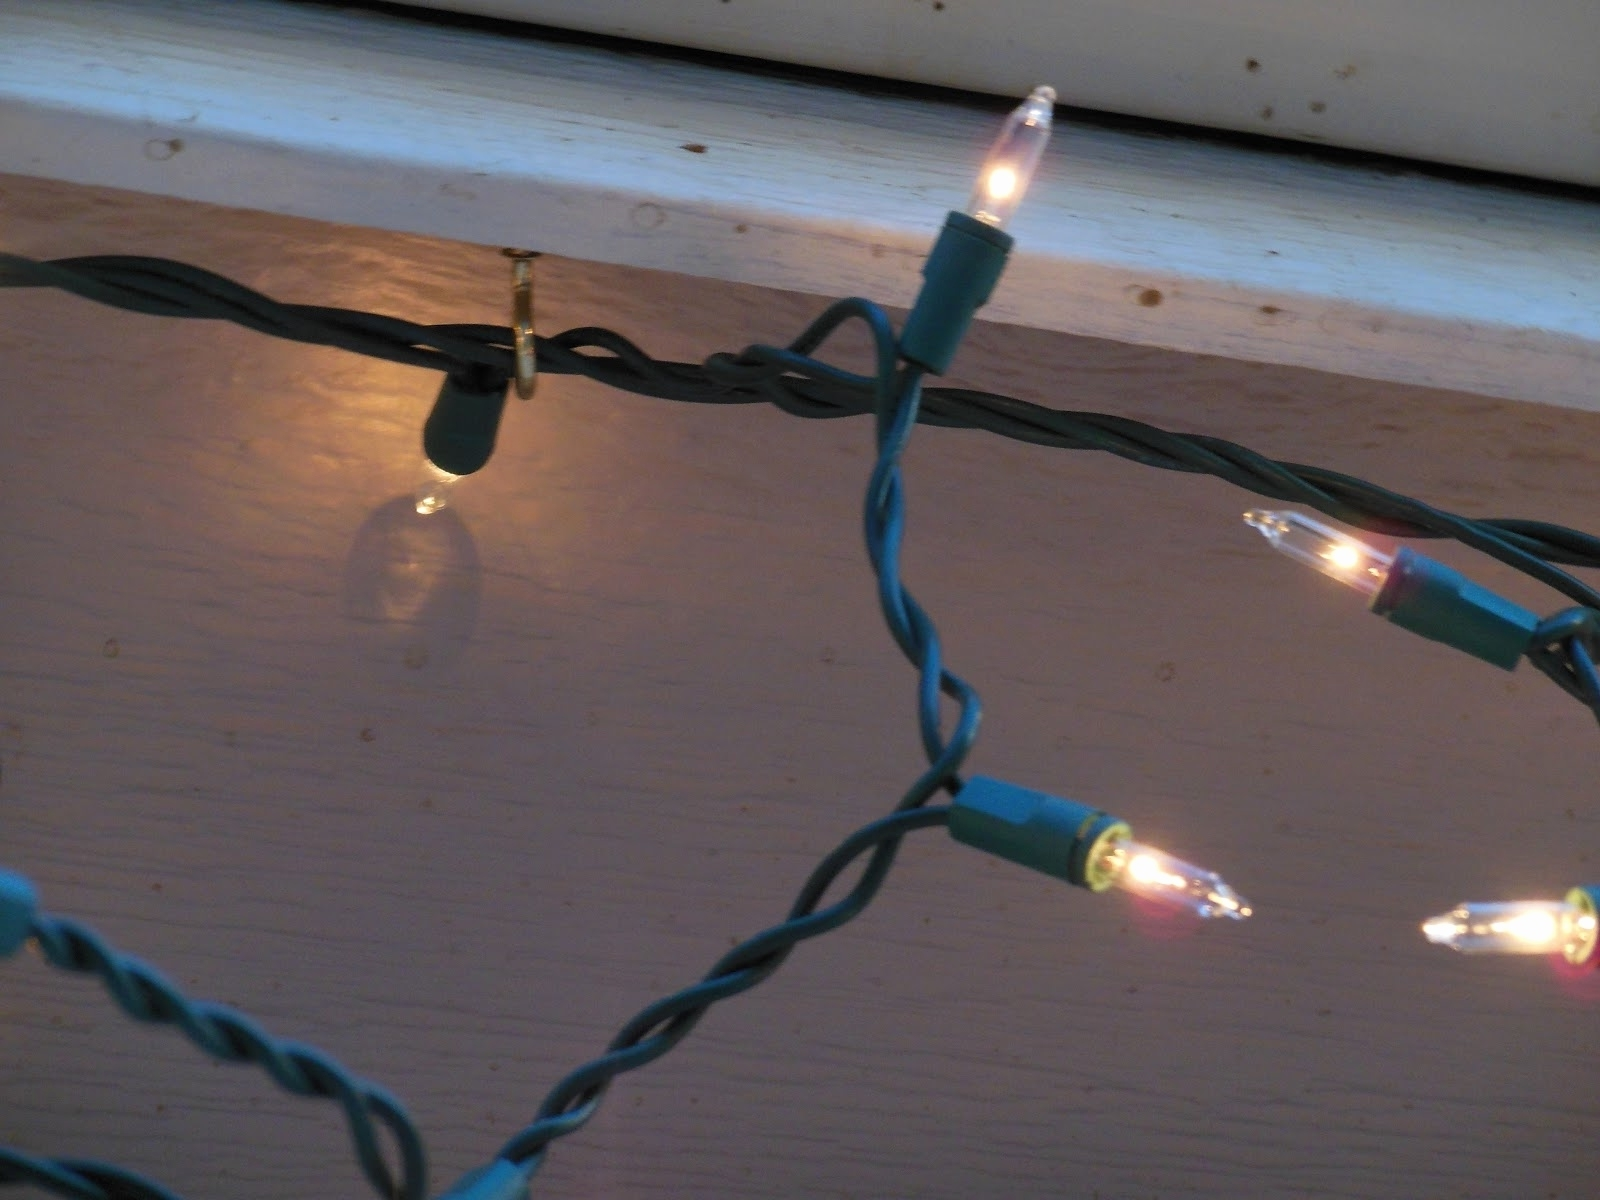 Famous Best Of How To Hang Outdoor Christmas Lights Images – Home Design Intended For Hanging Outdoor Christmas Lights Hooks (View 15 of 20)